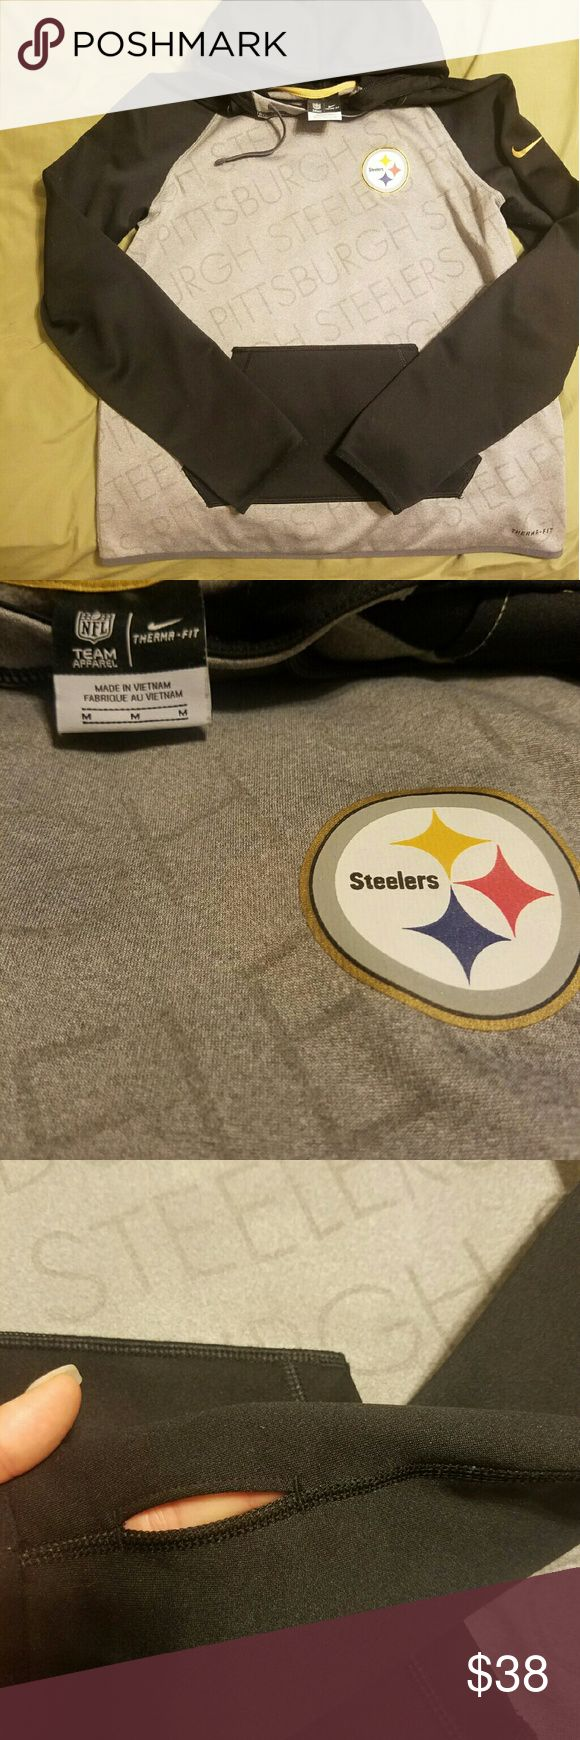 Women's Nike Sweatshirt This Nike Women's Steelers sweatshirt has thumb holes and worn only once to a game last November. Thermo fit for warmth in the winters without the bulkiness. Nike Tops Sweatshirts & Hoodies